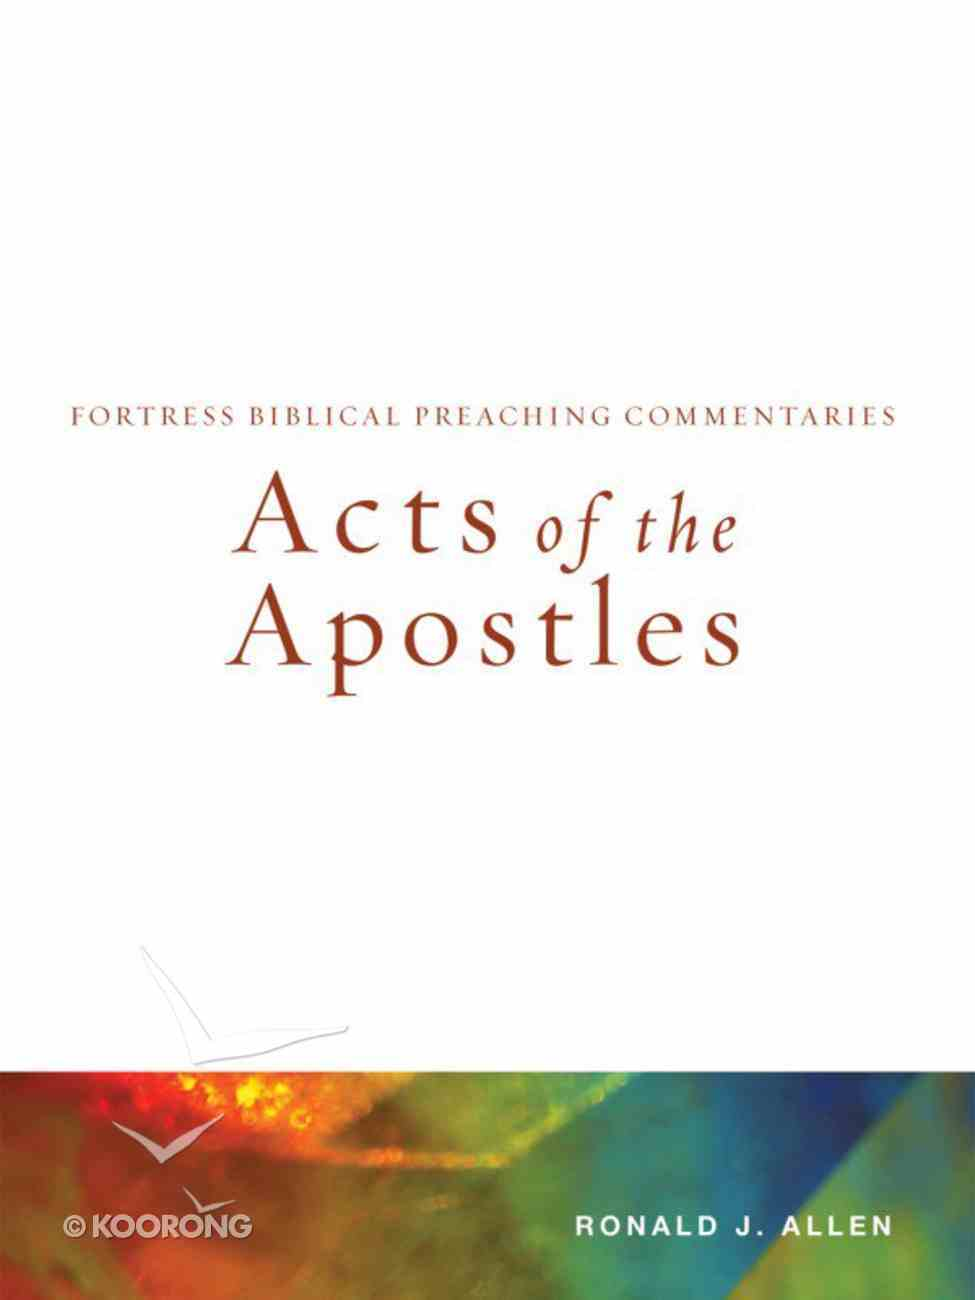 Acts of the Apostles (Fortress Biblical Peaching Commentaries Series) eBook